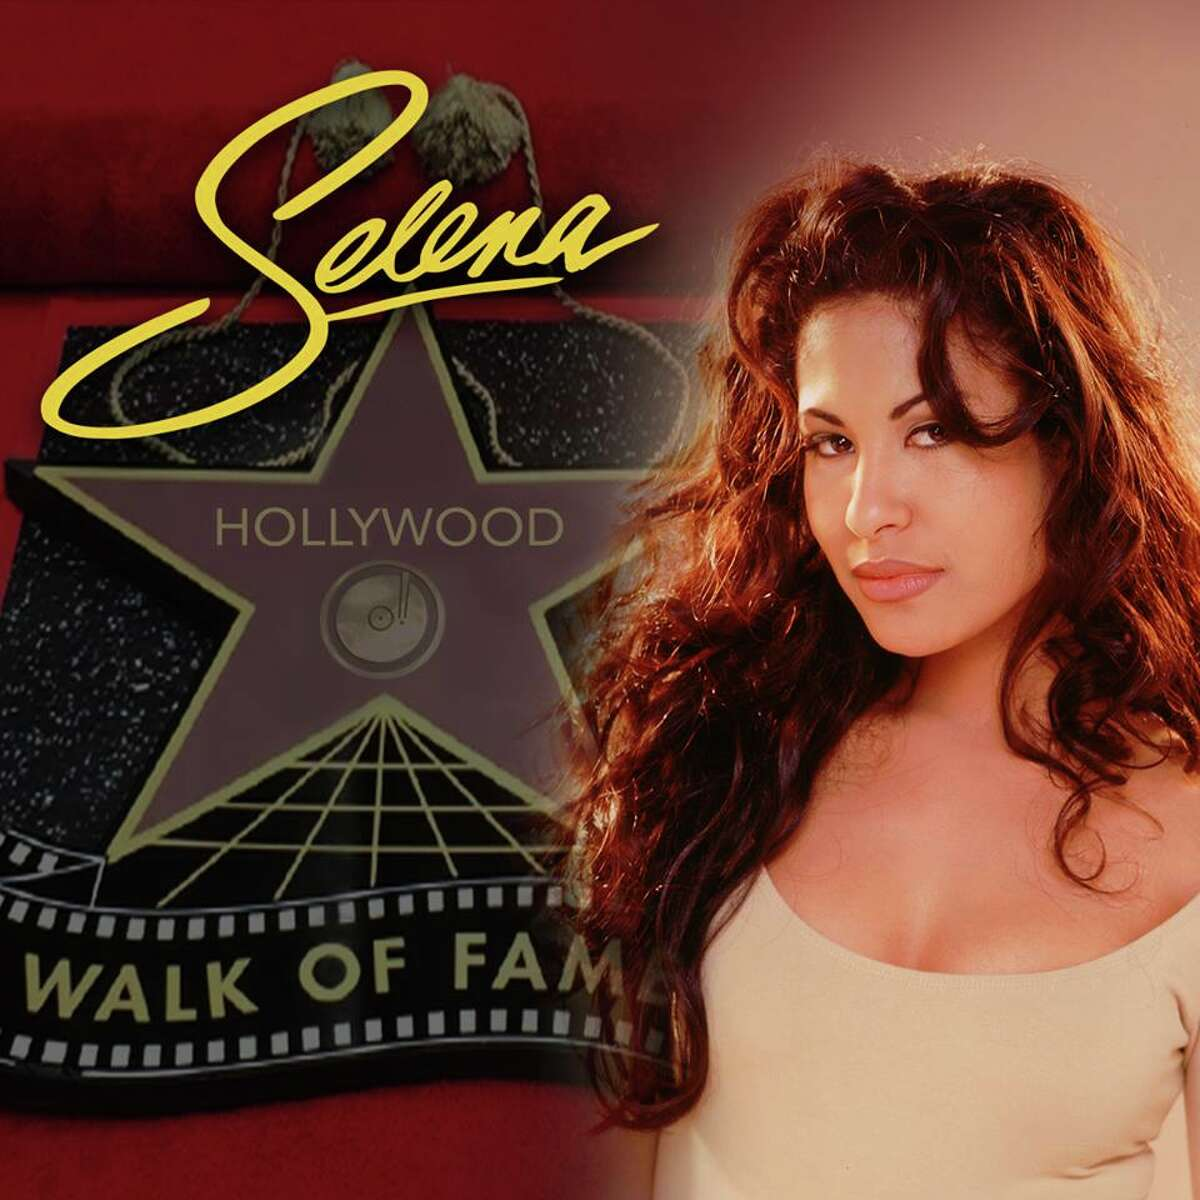 Fans who are still reeling from the recent Selena Google Doodle have another posthumous accomplishment to celebrate - she will be immortalized on the Hollywood Walk of Fame next month.